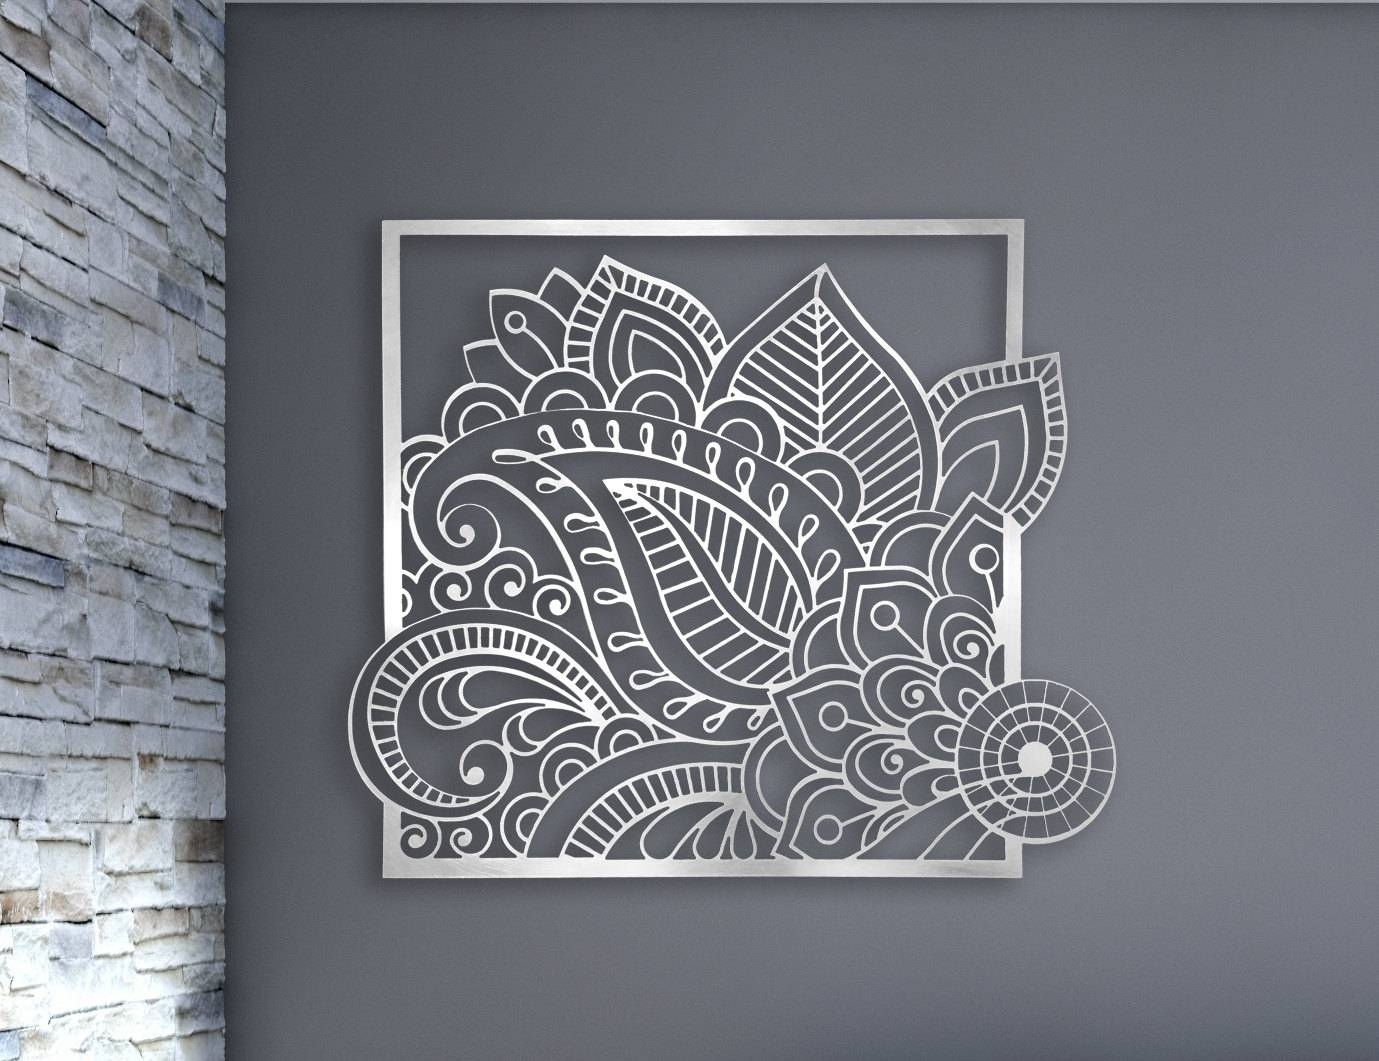 Laser Cut Metal Decorative Wall Art Panel Sculpture For Home Pertaining To Most Recent Laser Cut Metal Wall Art (View 7 of 20)